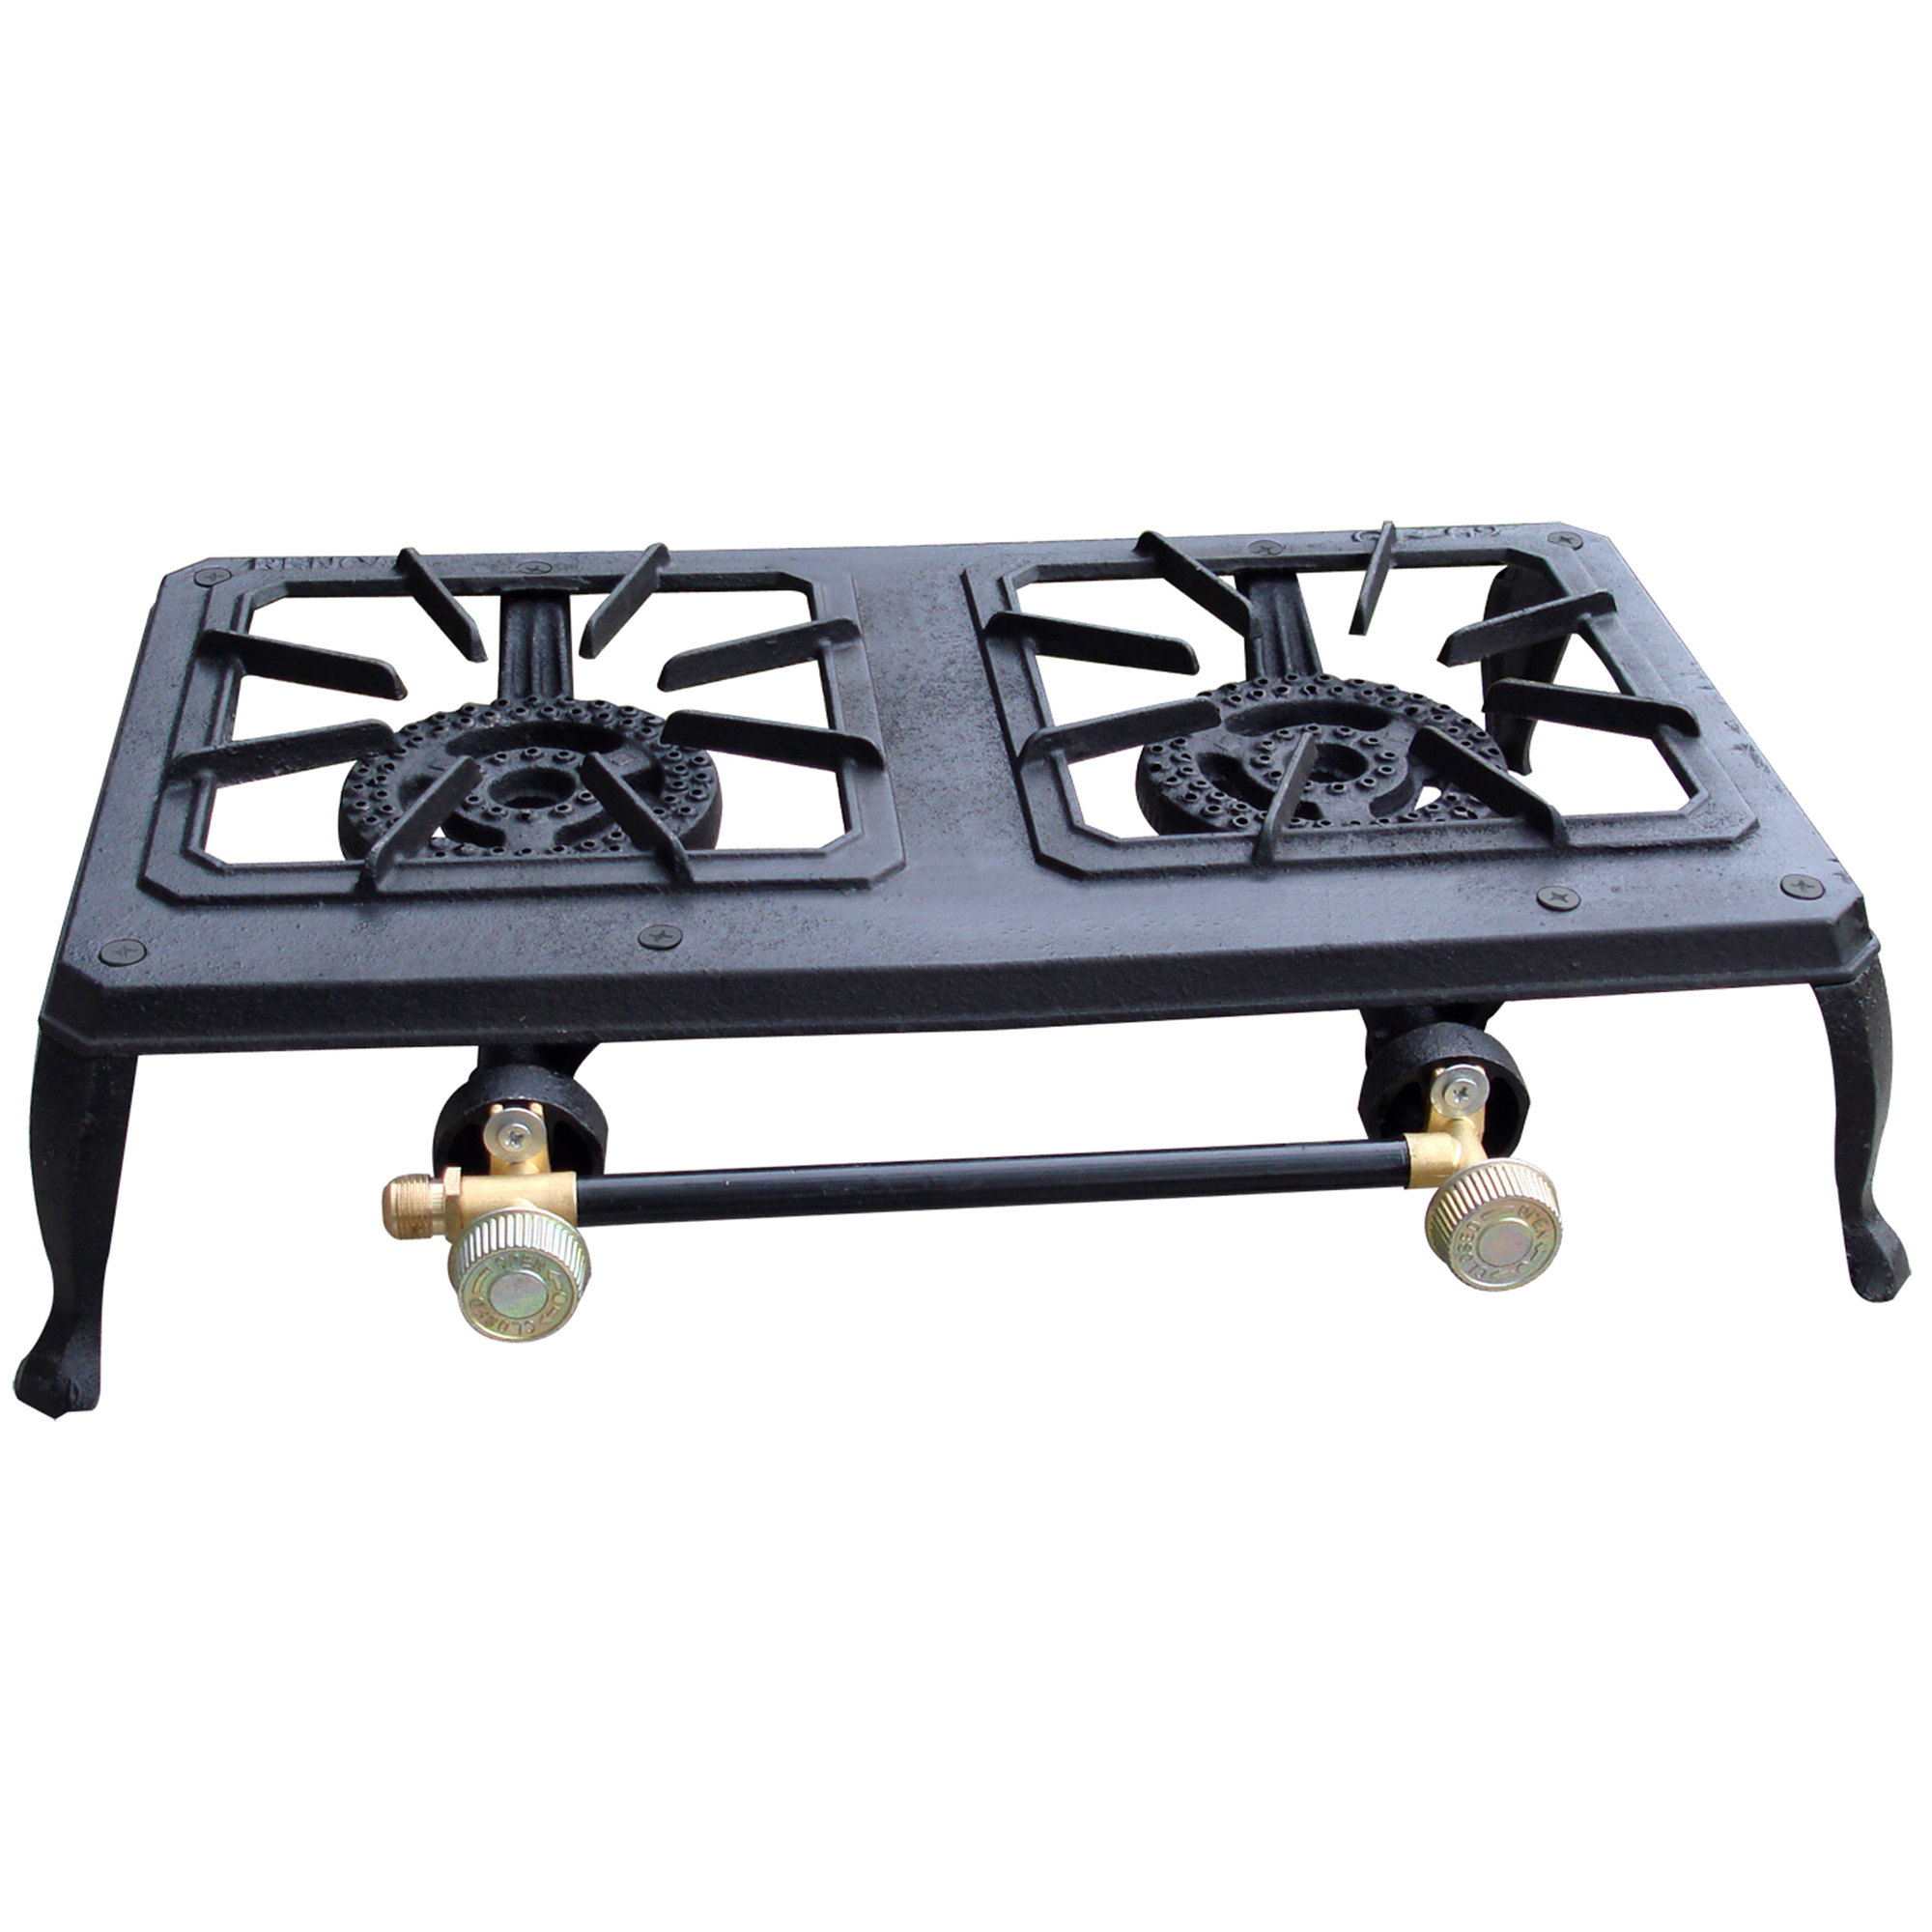 Sportsman Series Double Burner Cast Iron Stove - BC at Sears.com